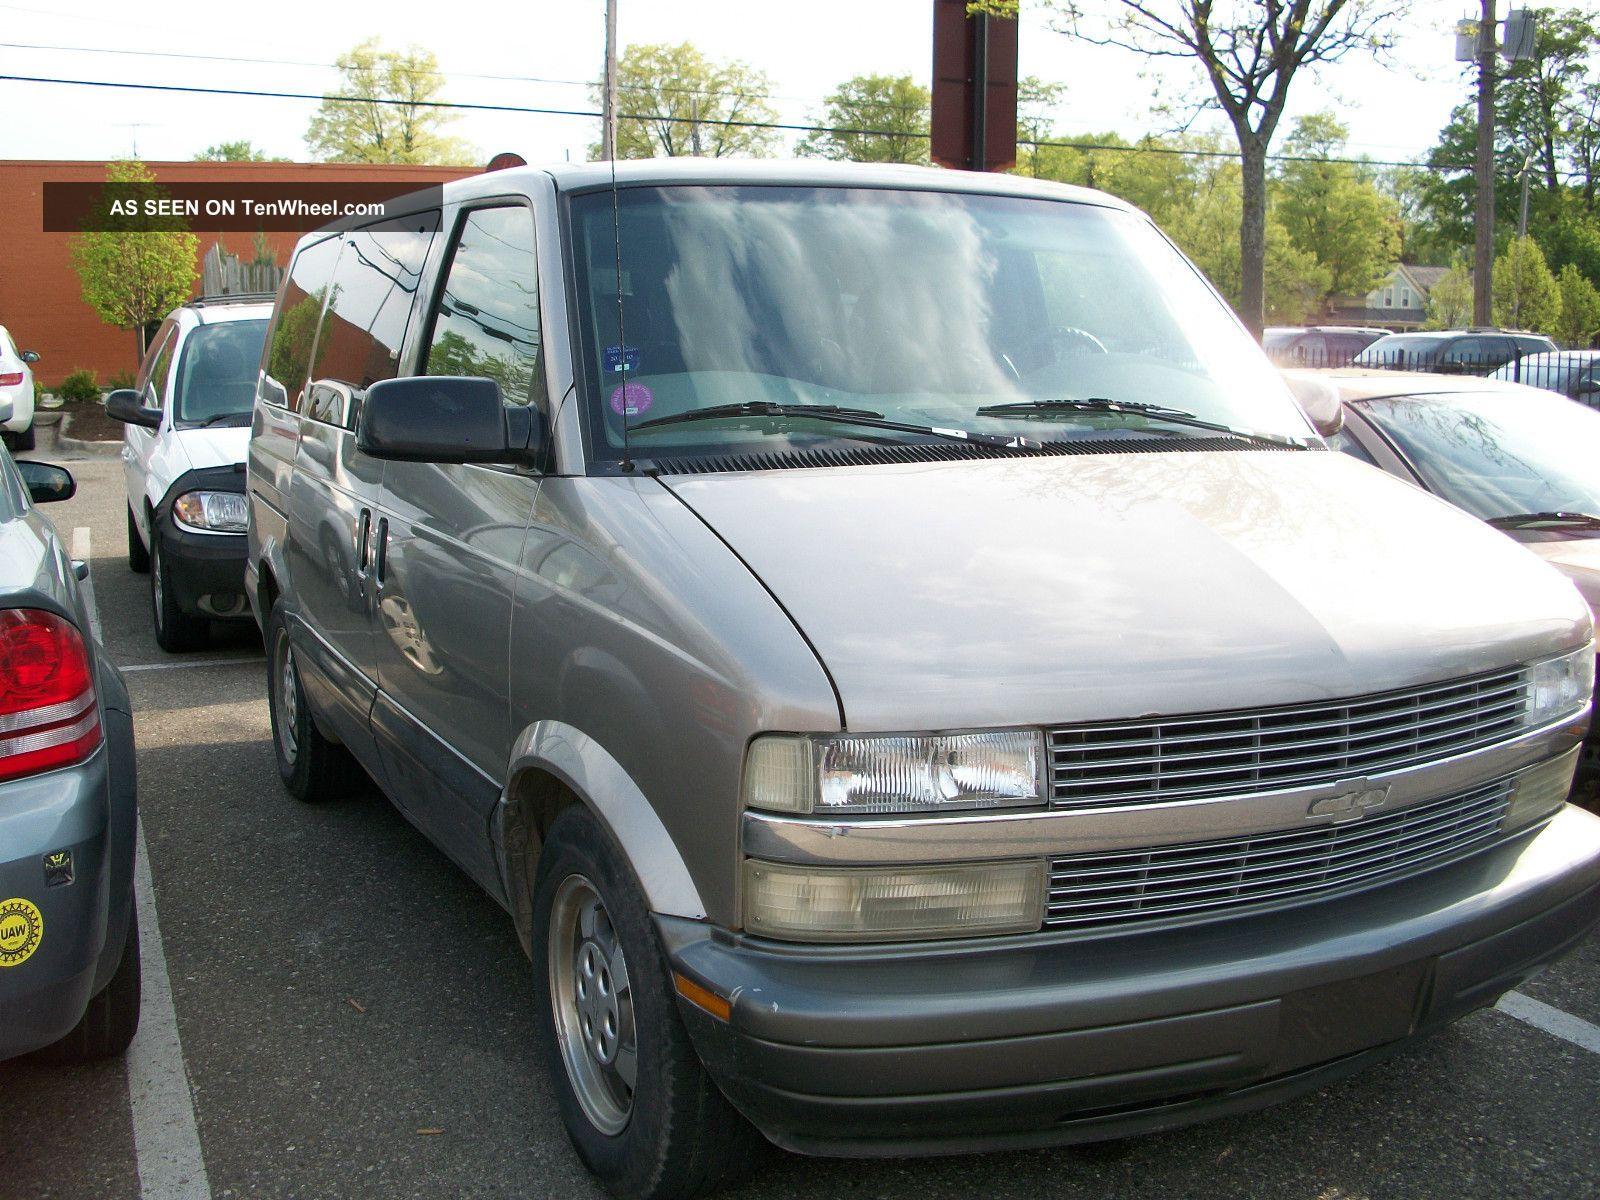 2003 chevrolet astro awd extended passenger van 3 door 4 3l. Black Bedroom Furniture Sets. Home Design Ideas